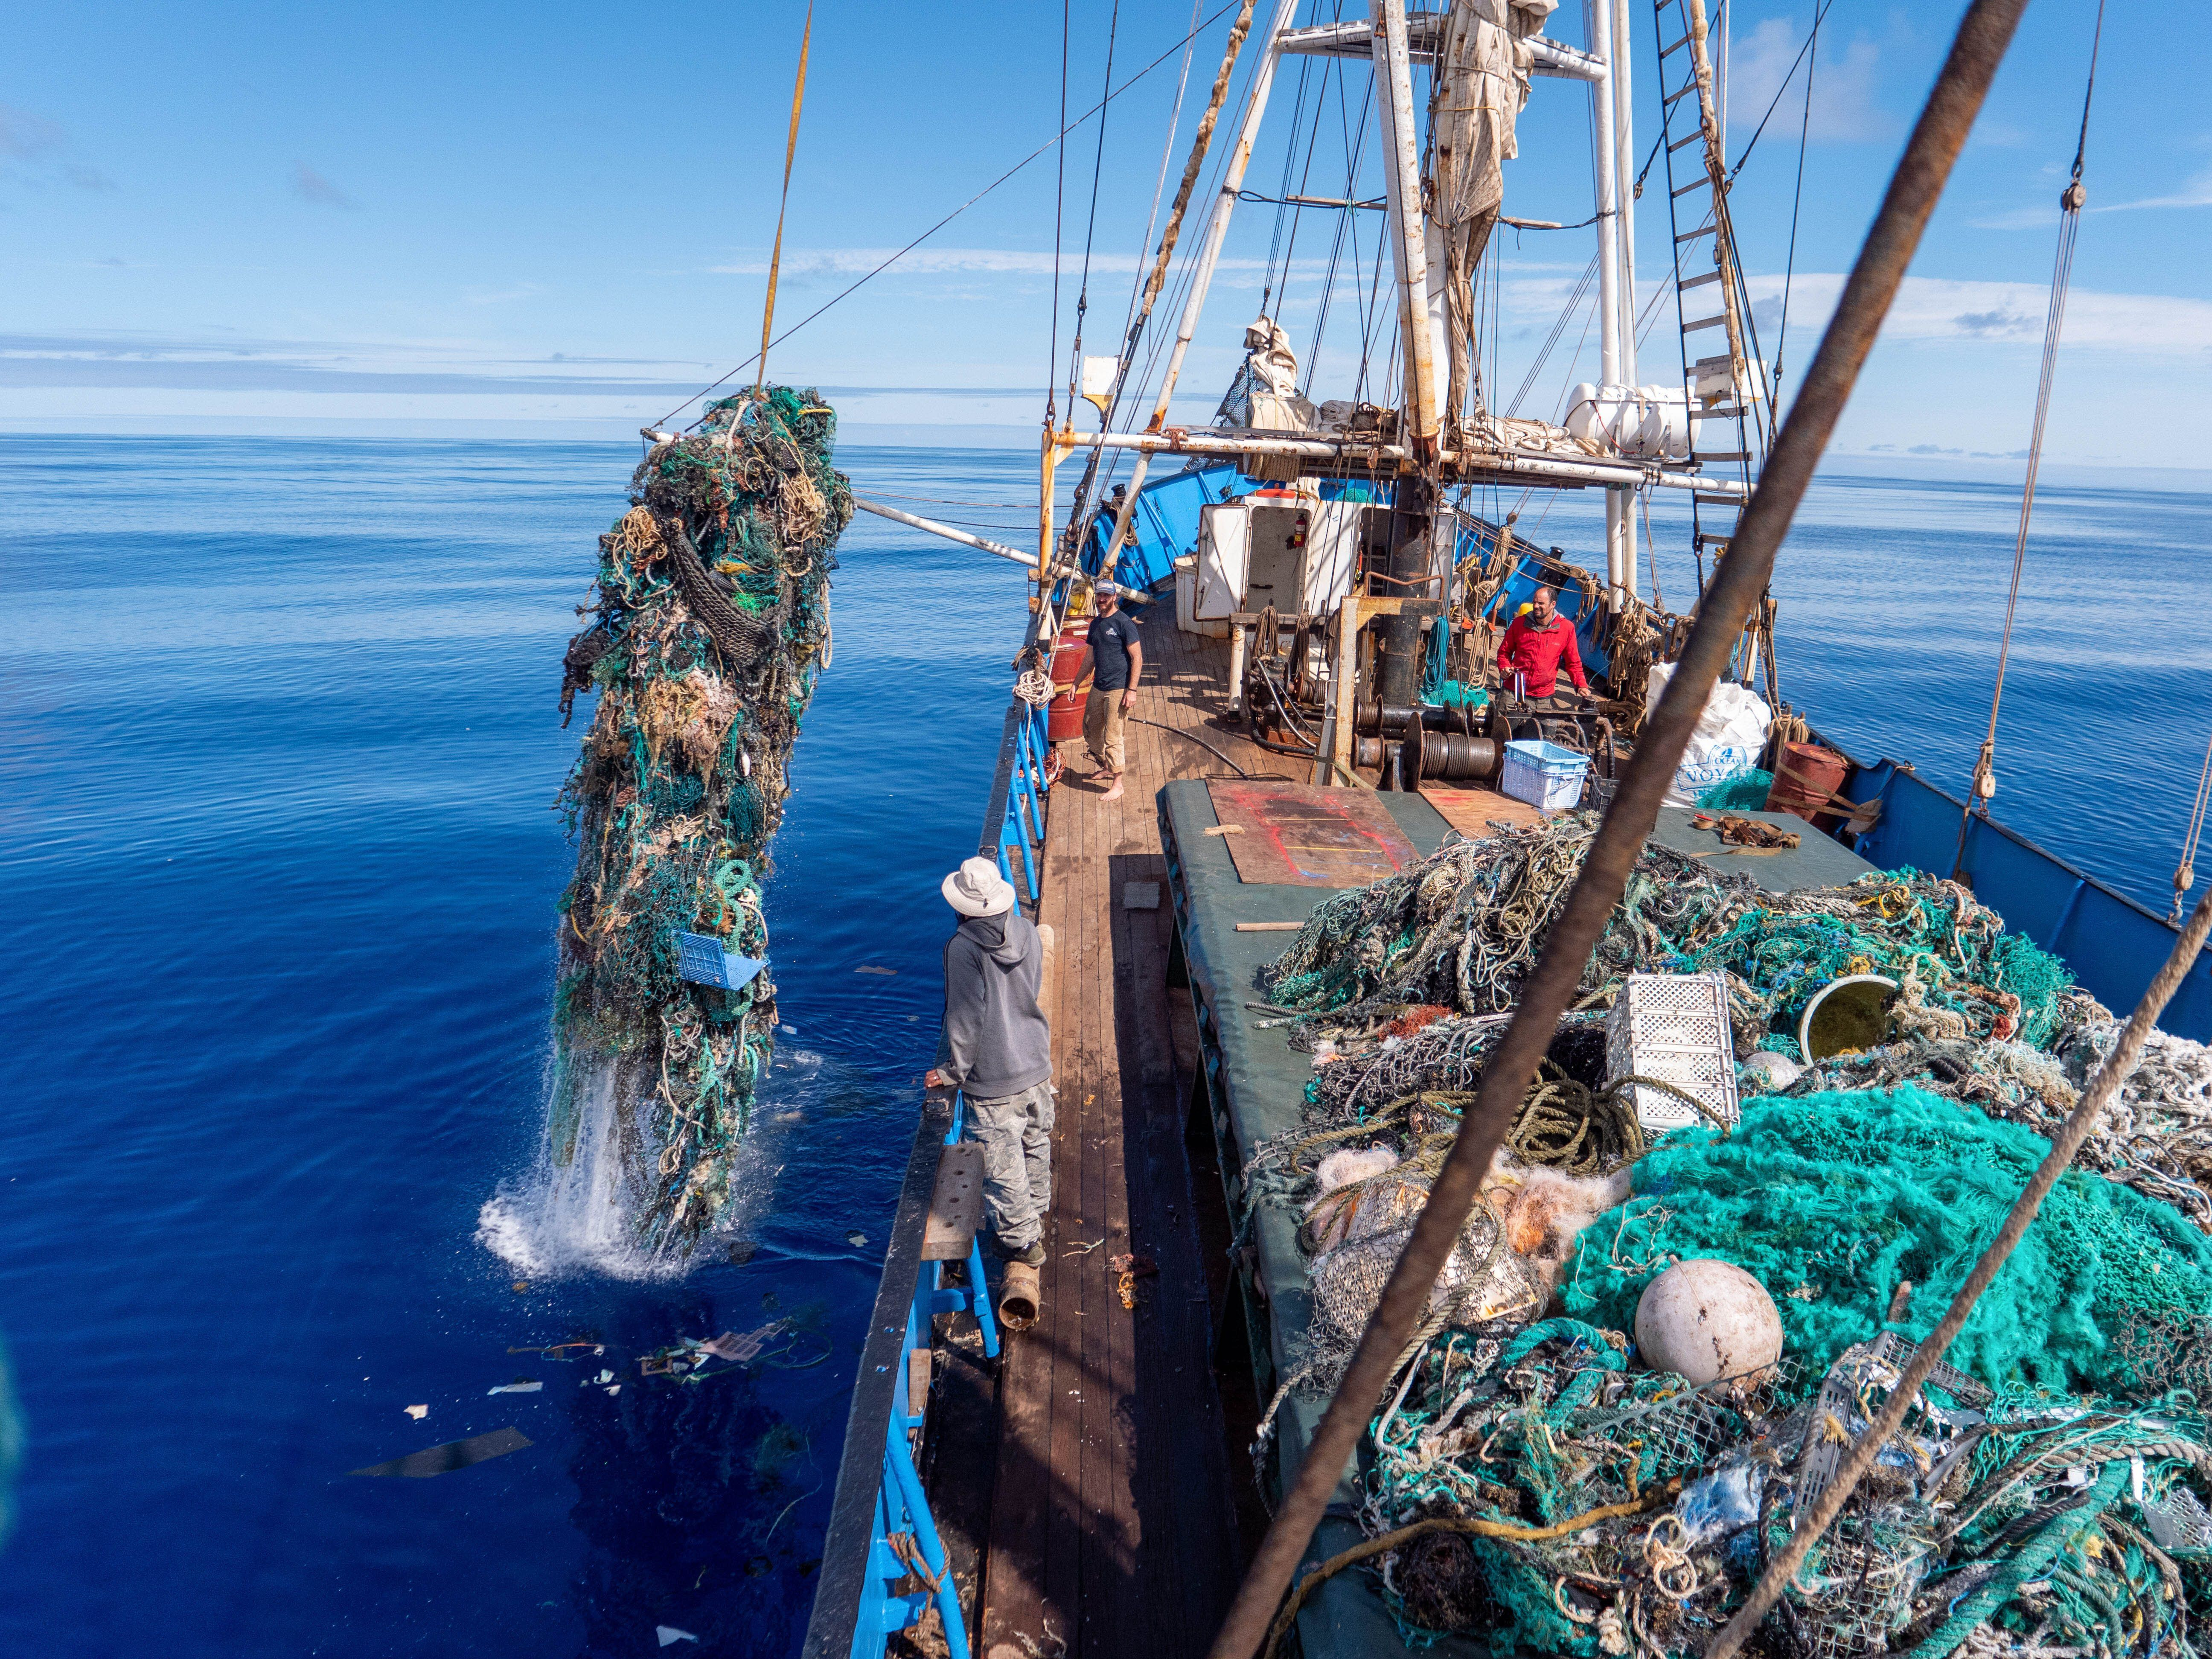 No one knows exactly how much plastic waste is floating in the Pacific Ocean.